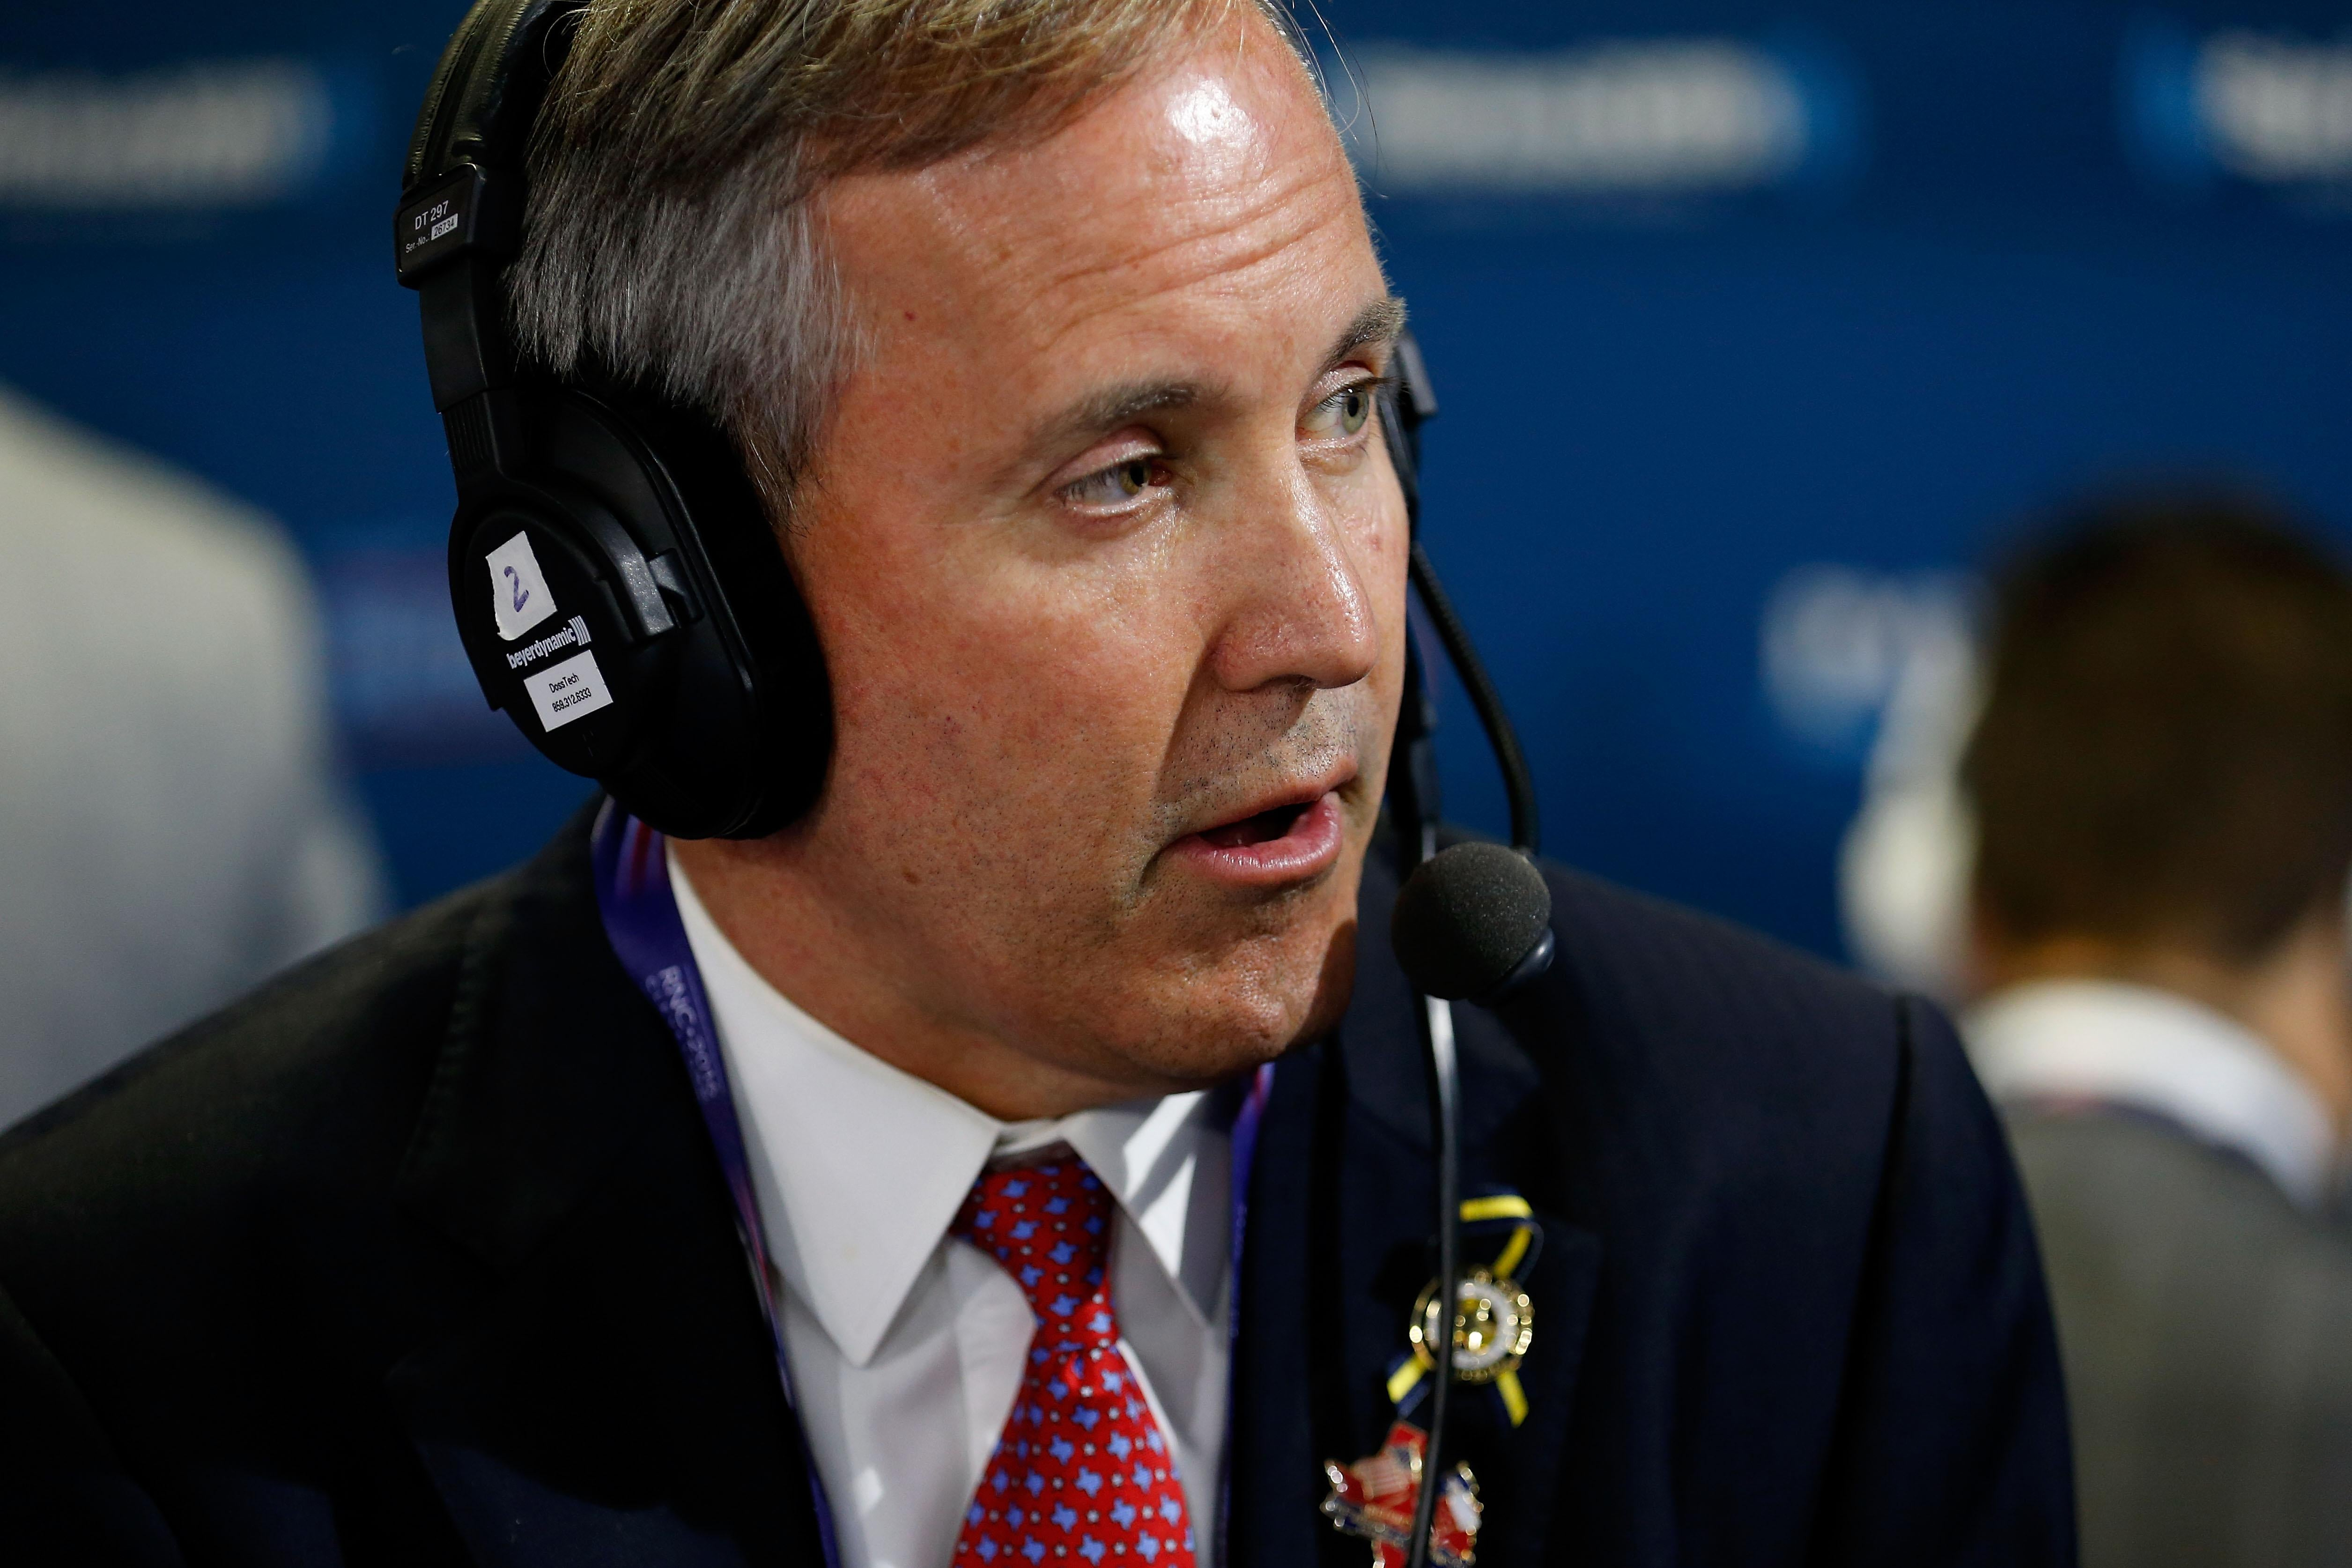 Texas Attorney General Ken Paxton, who pushed the bogus claim of voter fraud. (Photo by Kirk Irwin/Getty Images for SiriusXM)